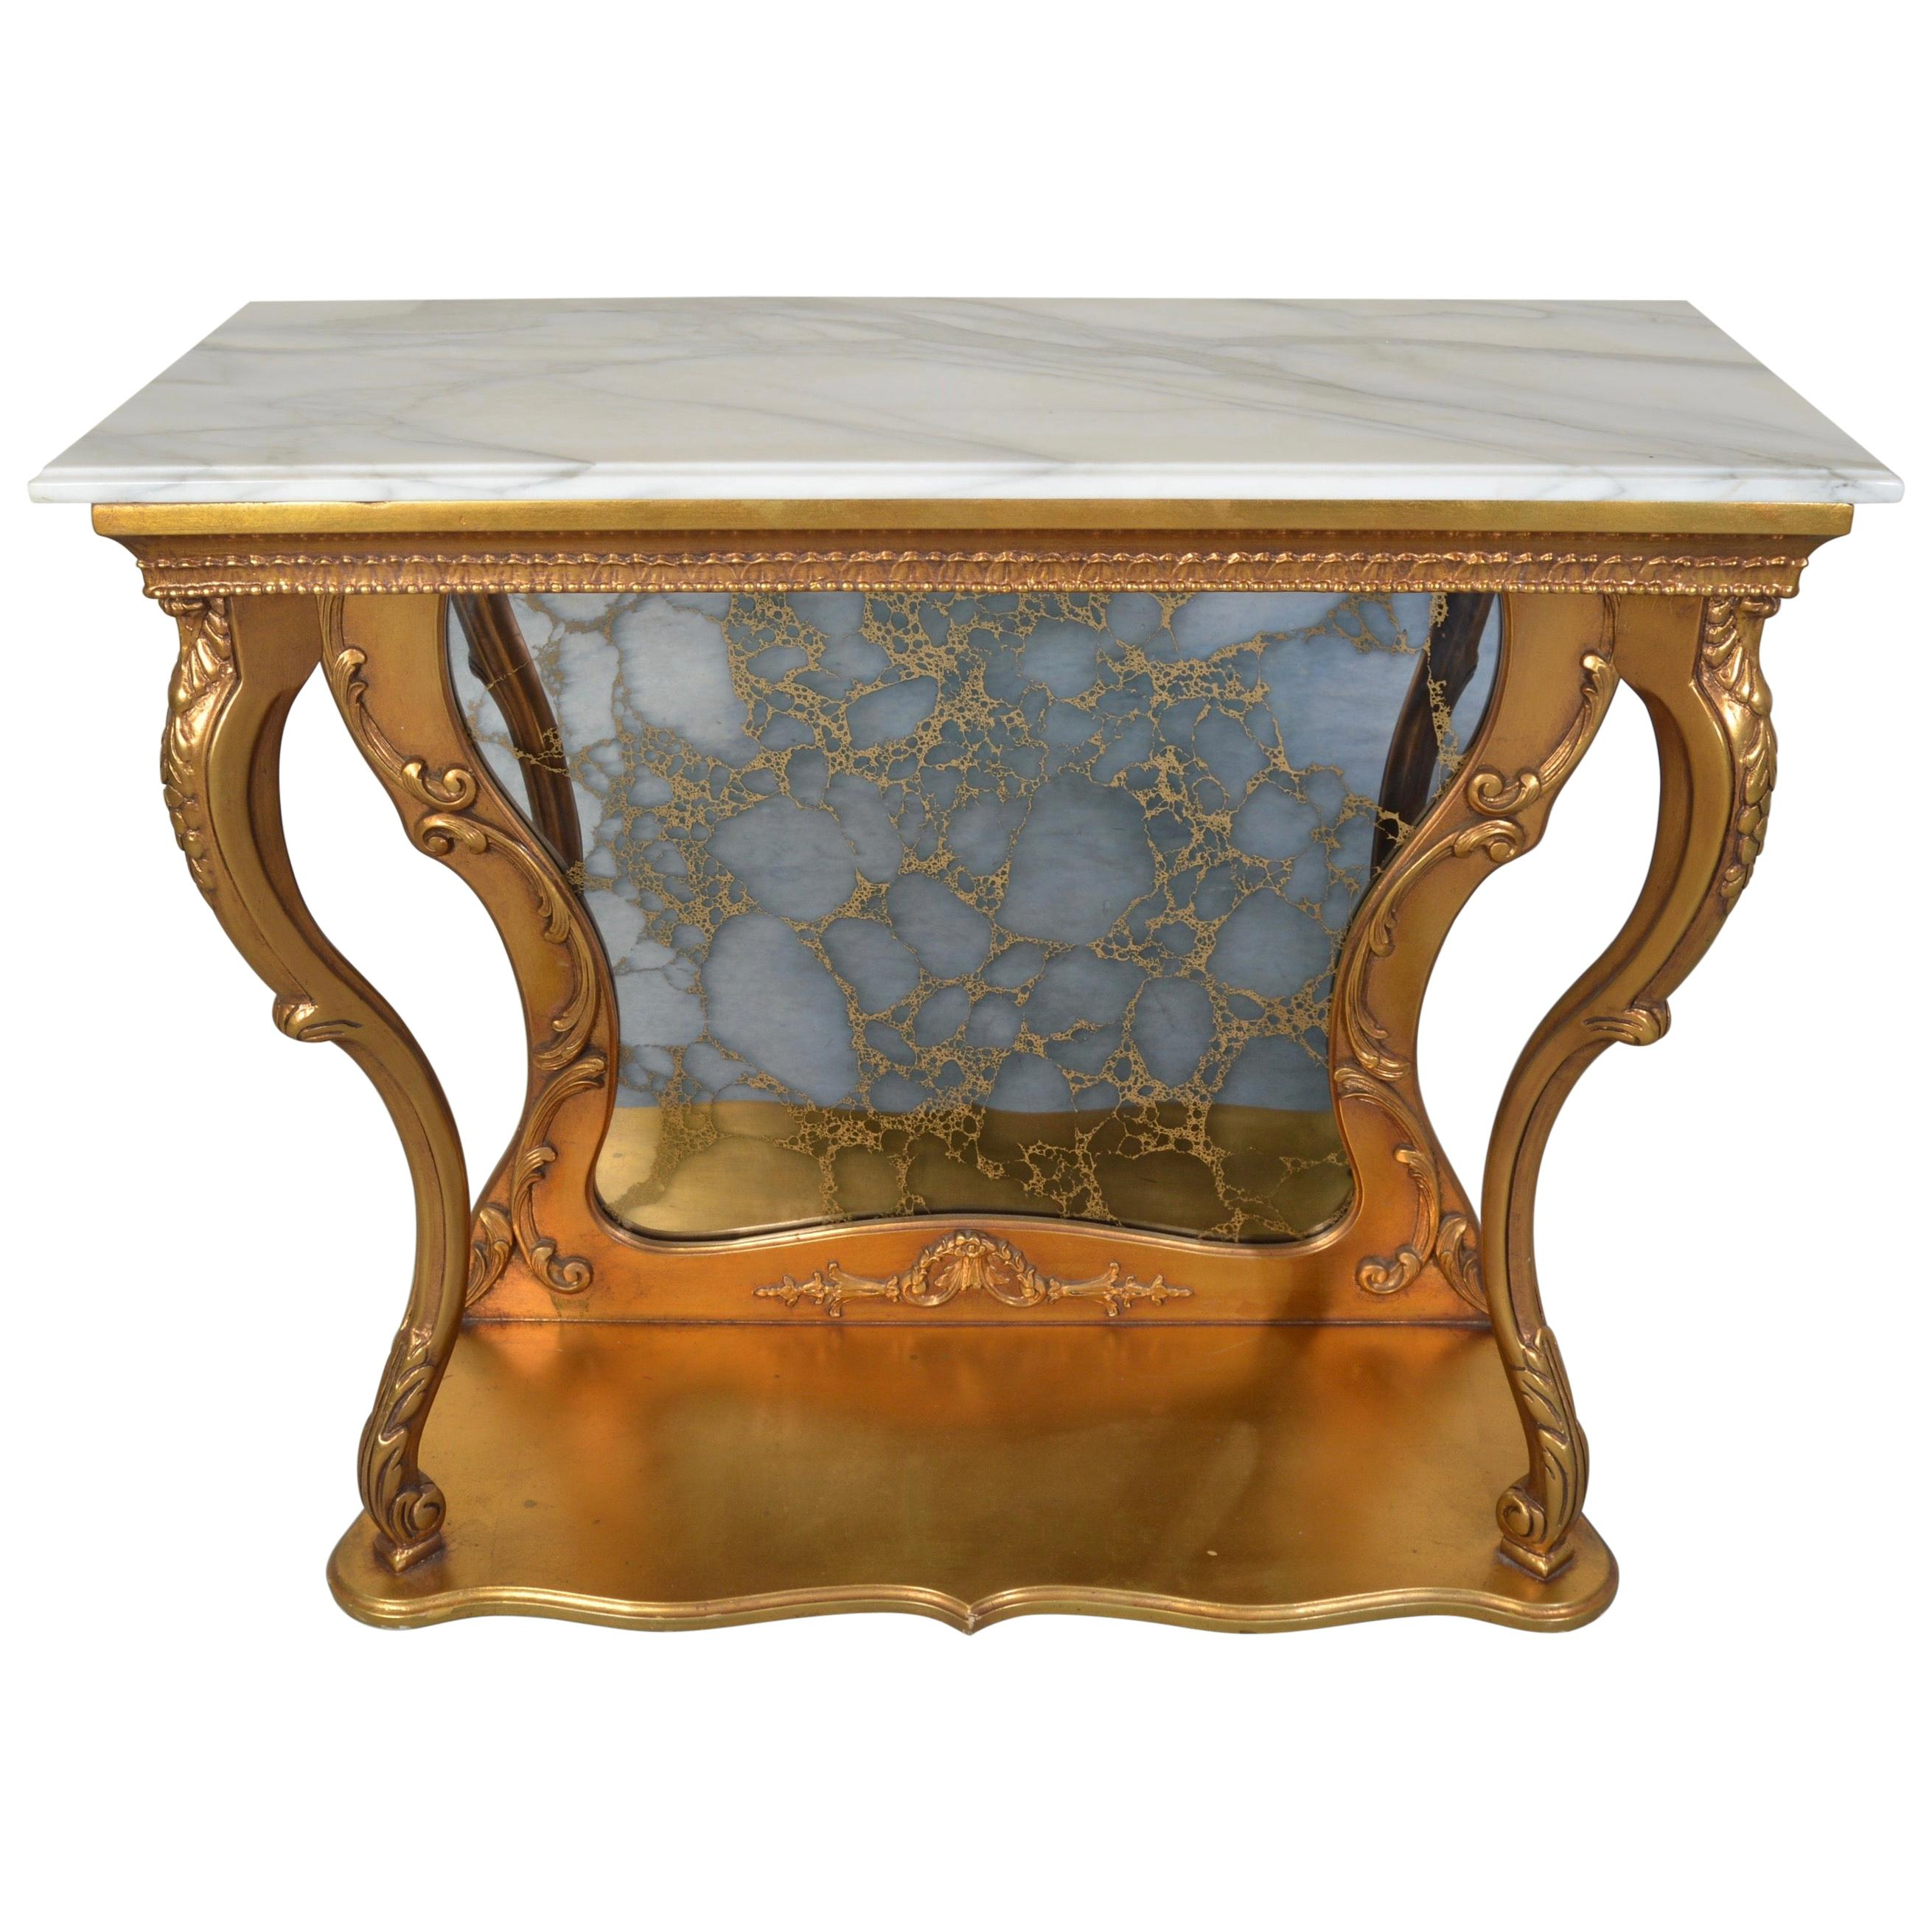 Gold Gilt Louis XV Style French Marble Top Console Table with Antiqued Mirror